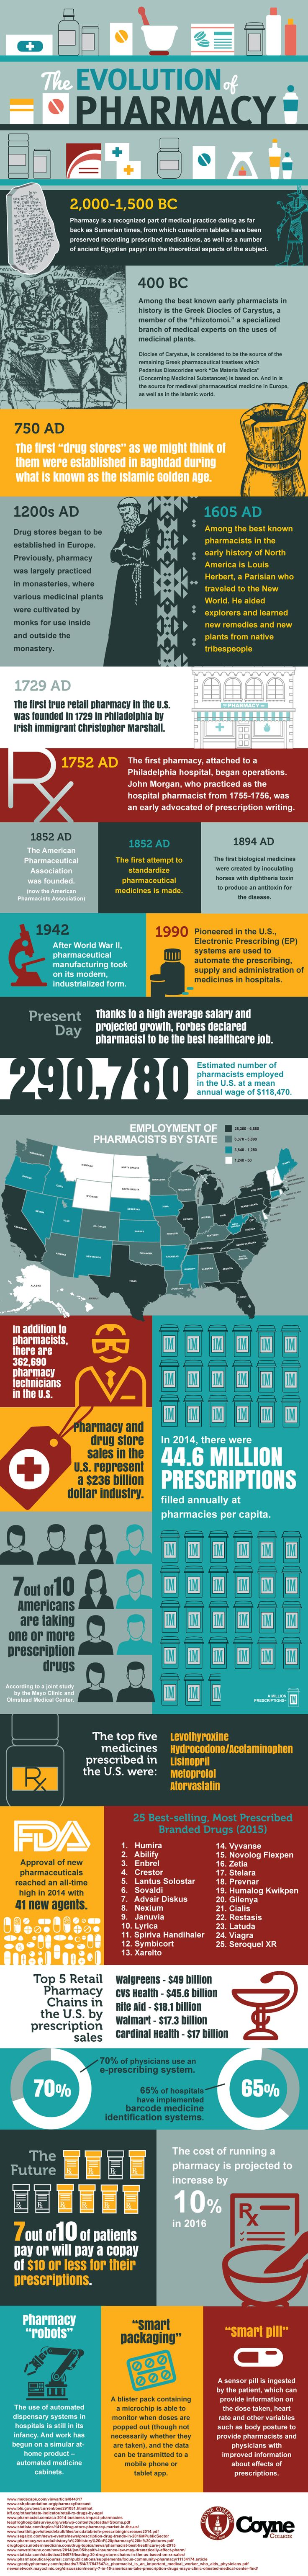 The Evolution of Pharmacy #Infographic #Education #History